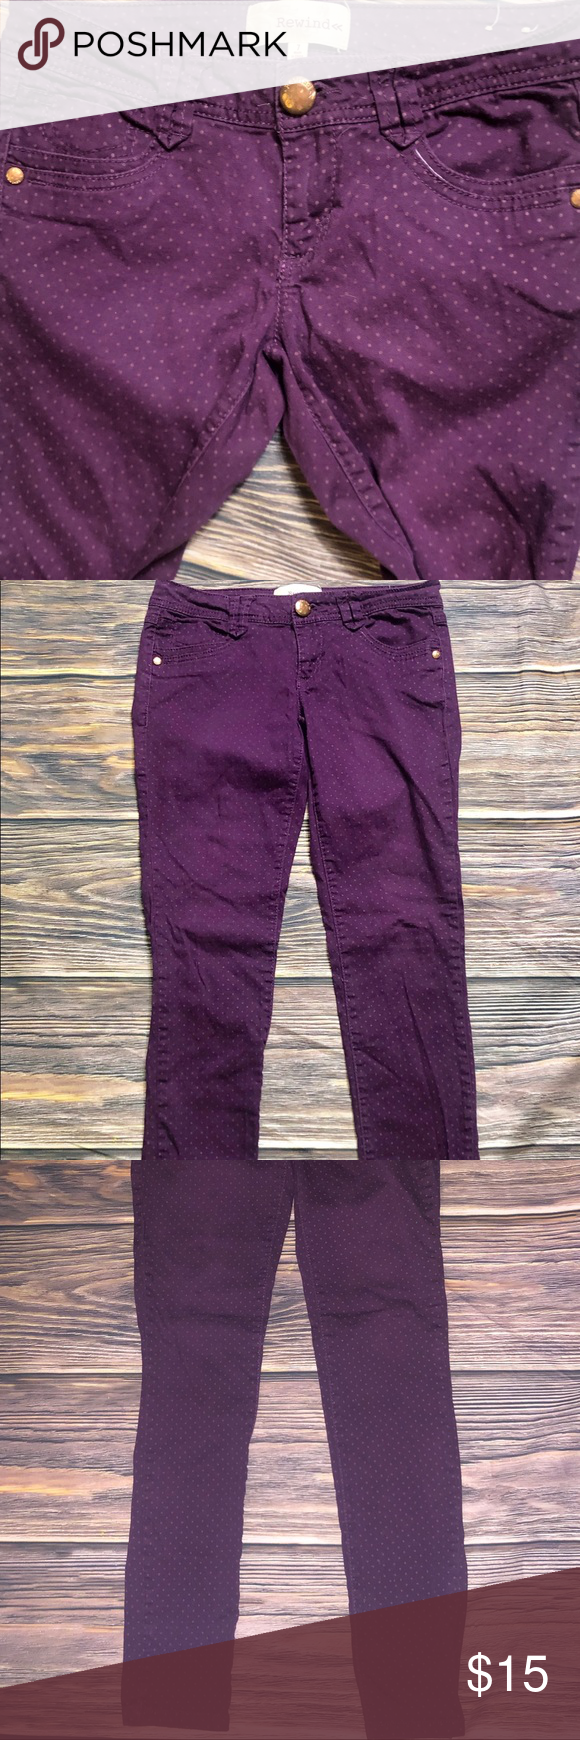 "Rewind"" Purple skinny jeans with dots SZ 7 Rewind Purple"